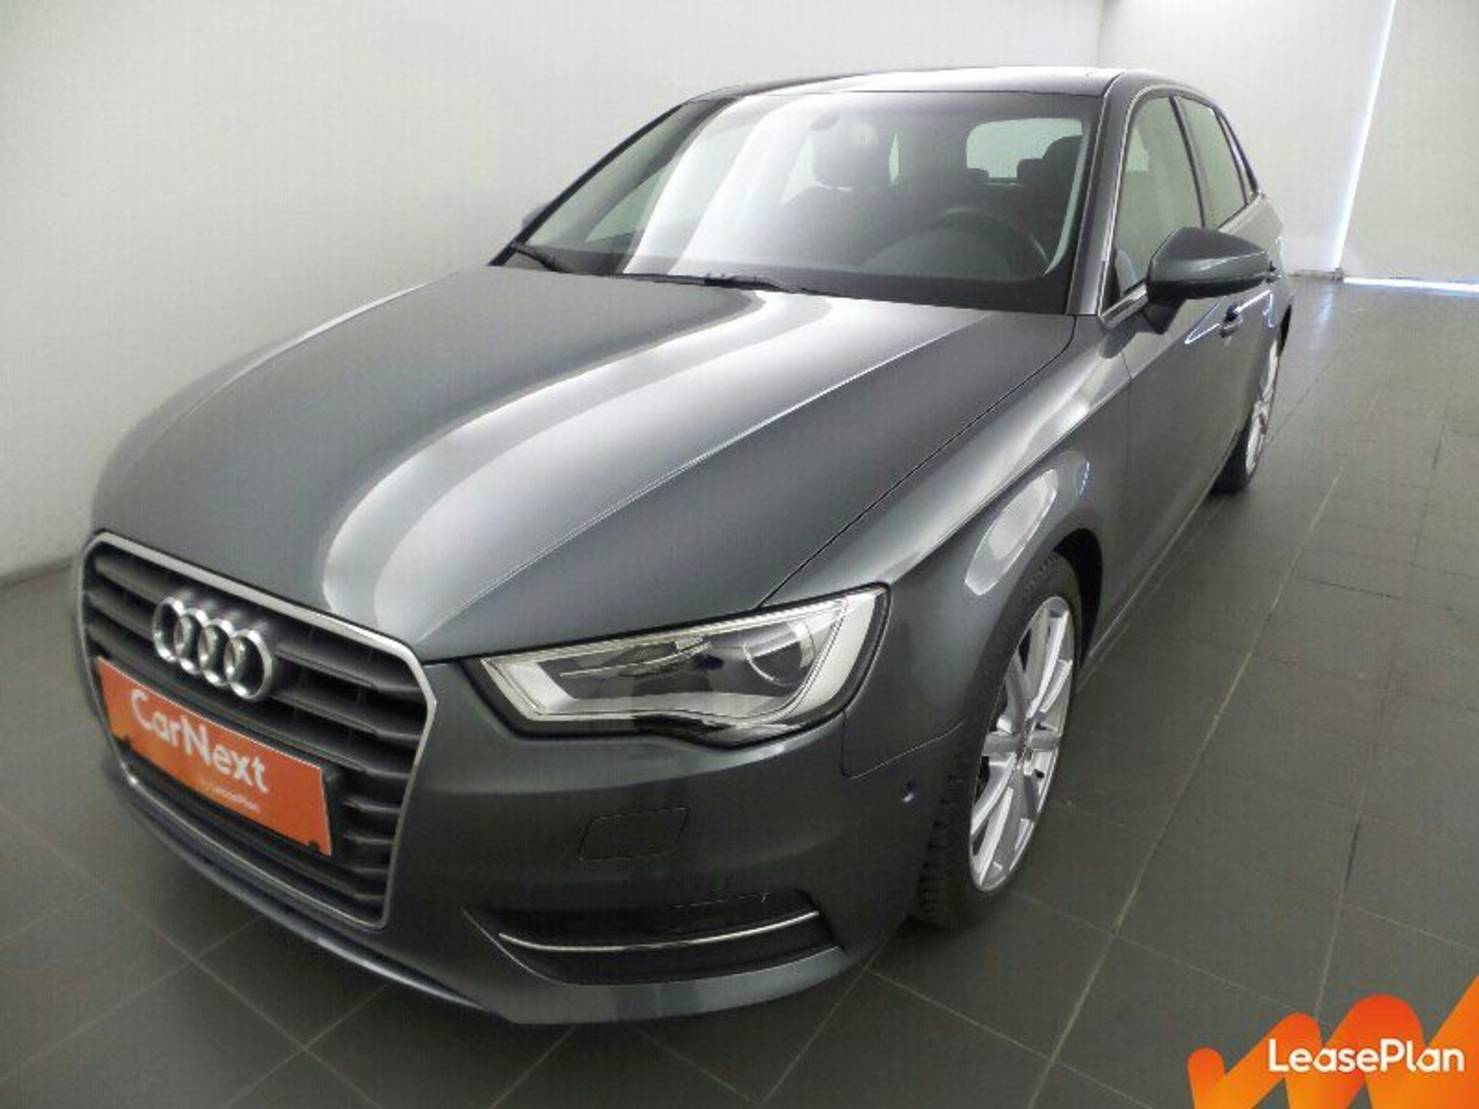 Audi A3 2.0 TDI 150, Ambition Luxe S tronic 6 detail1